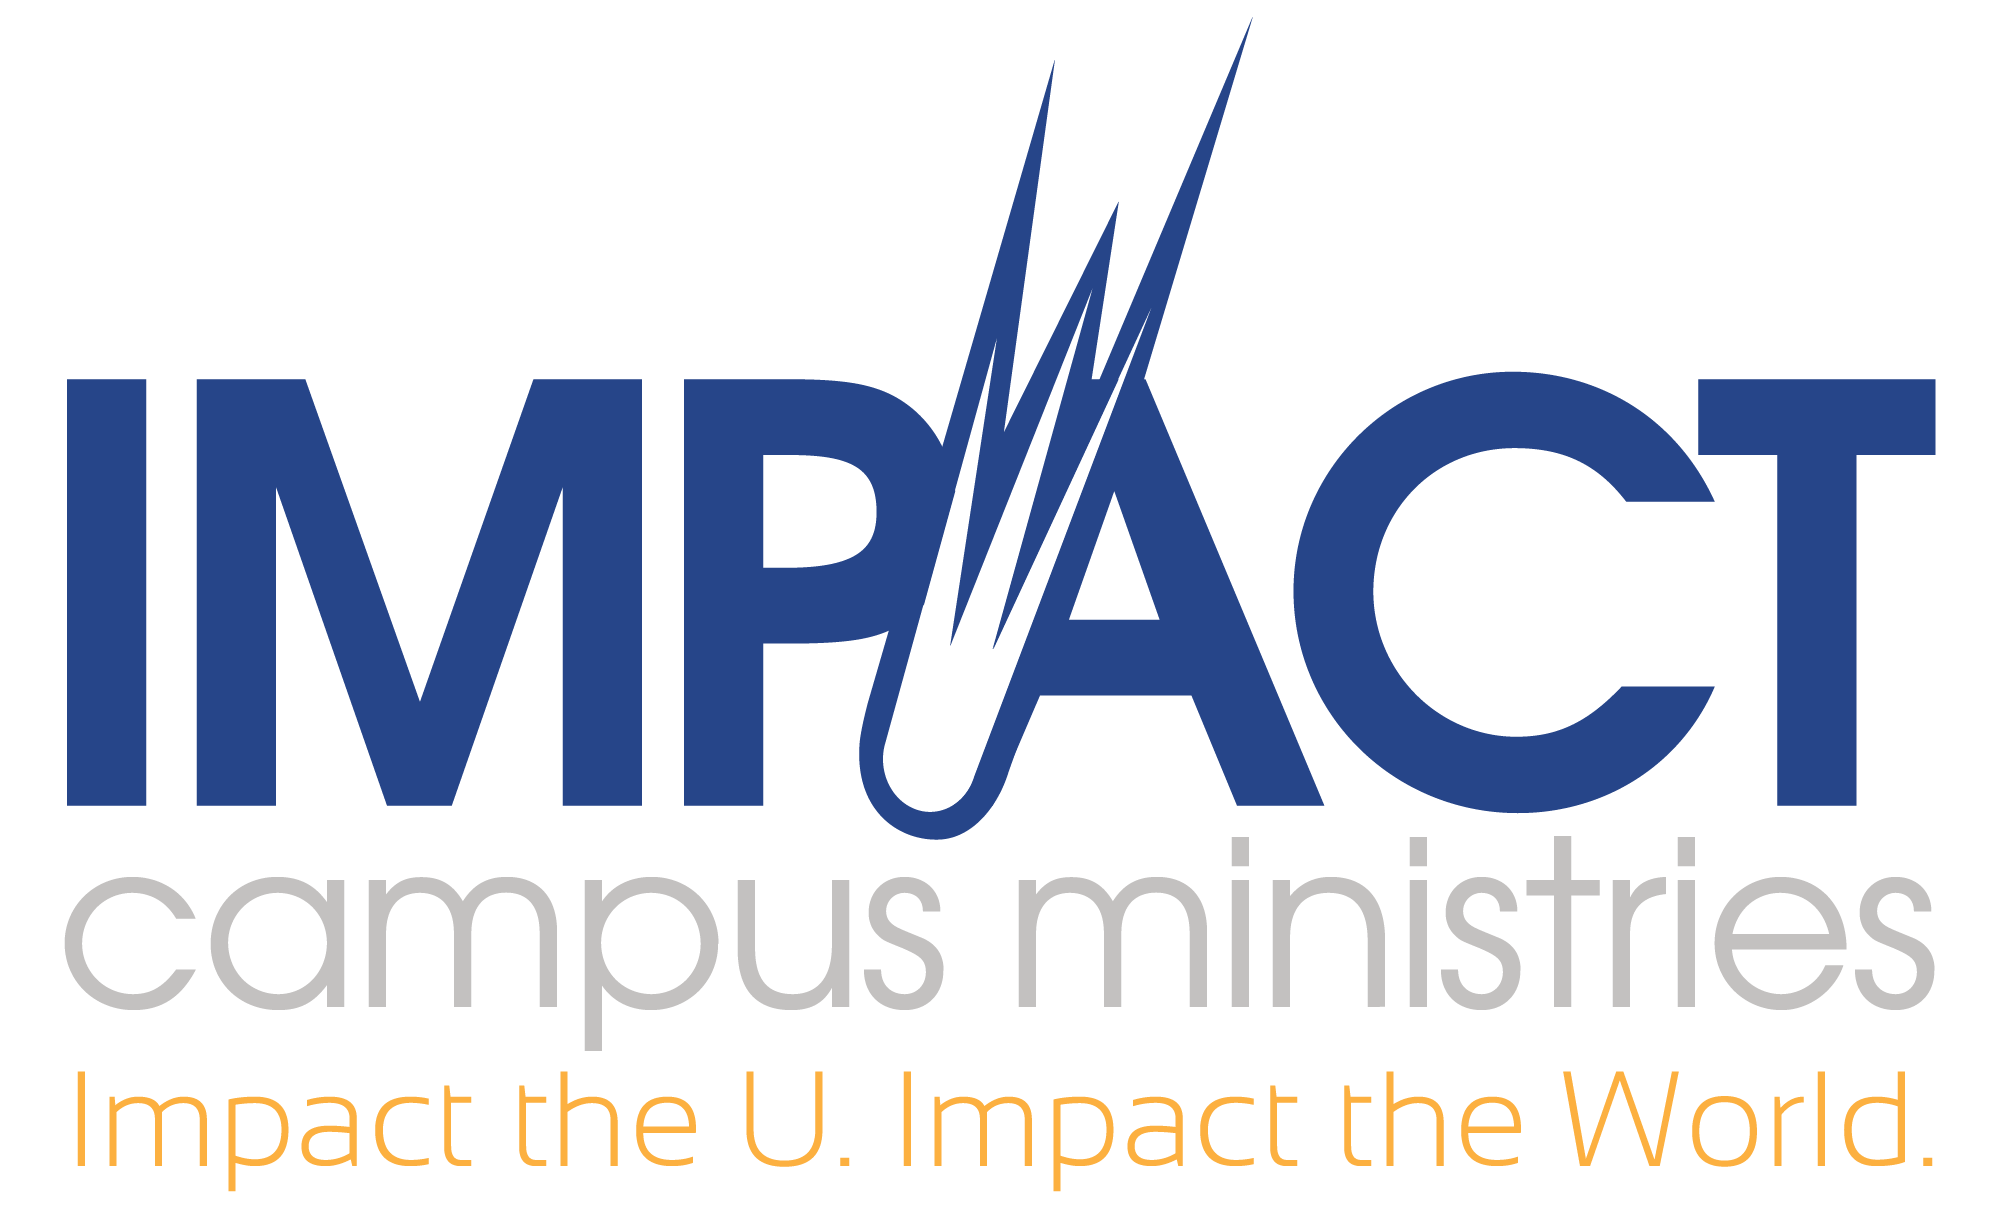 Impact Campus Ministries